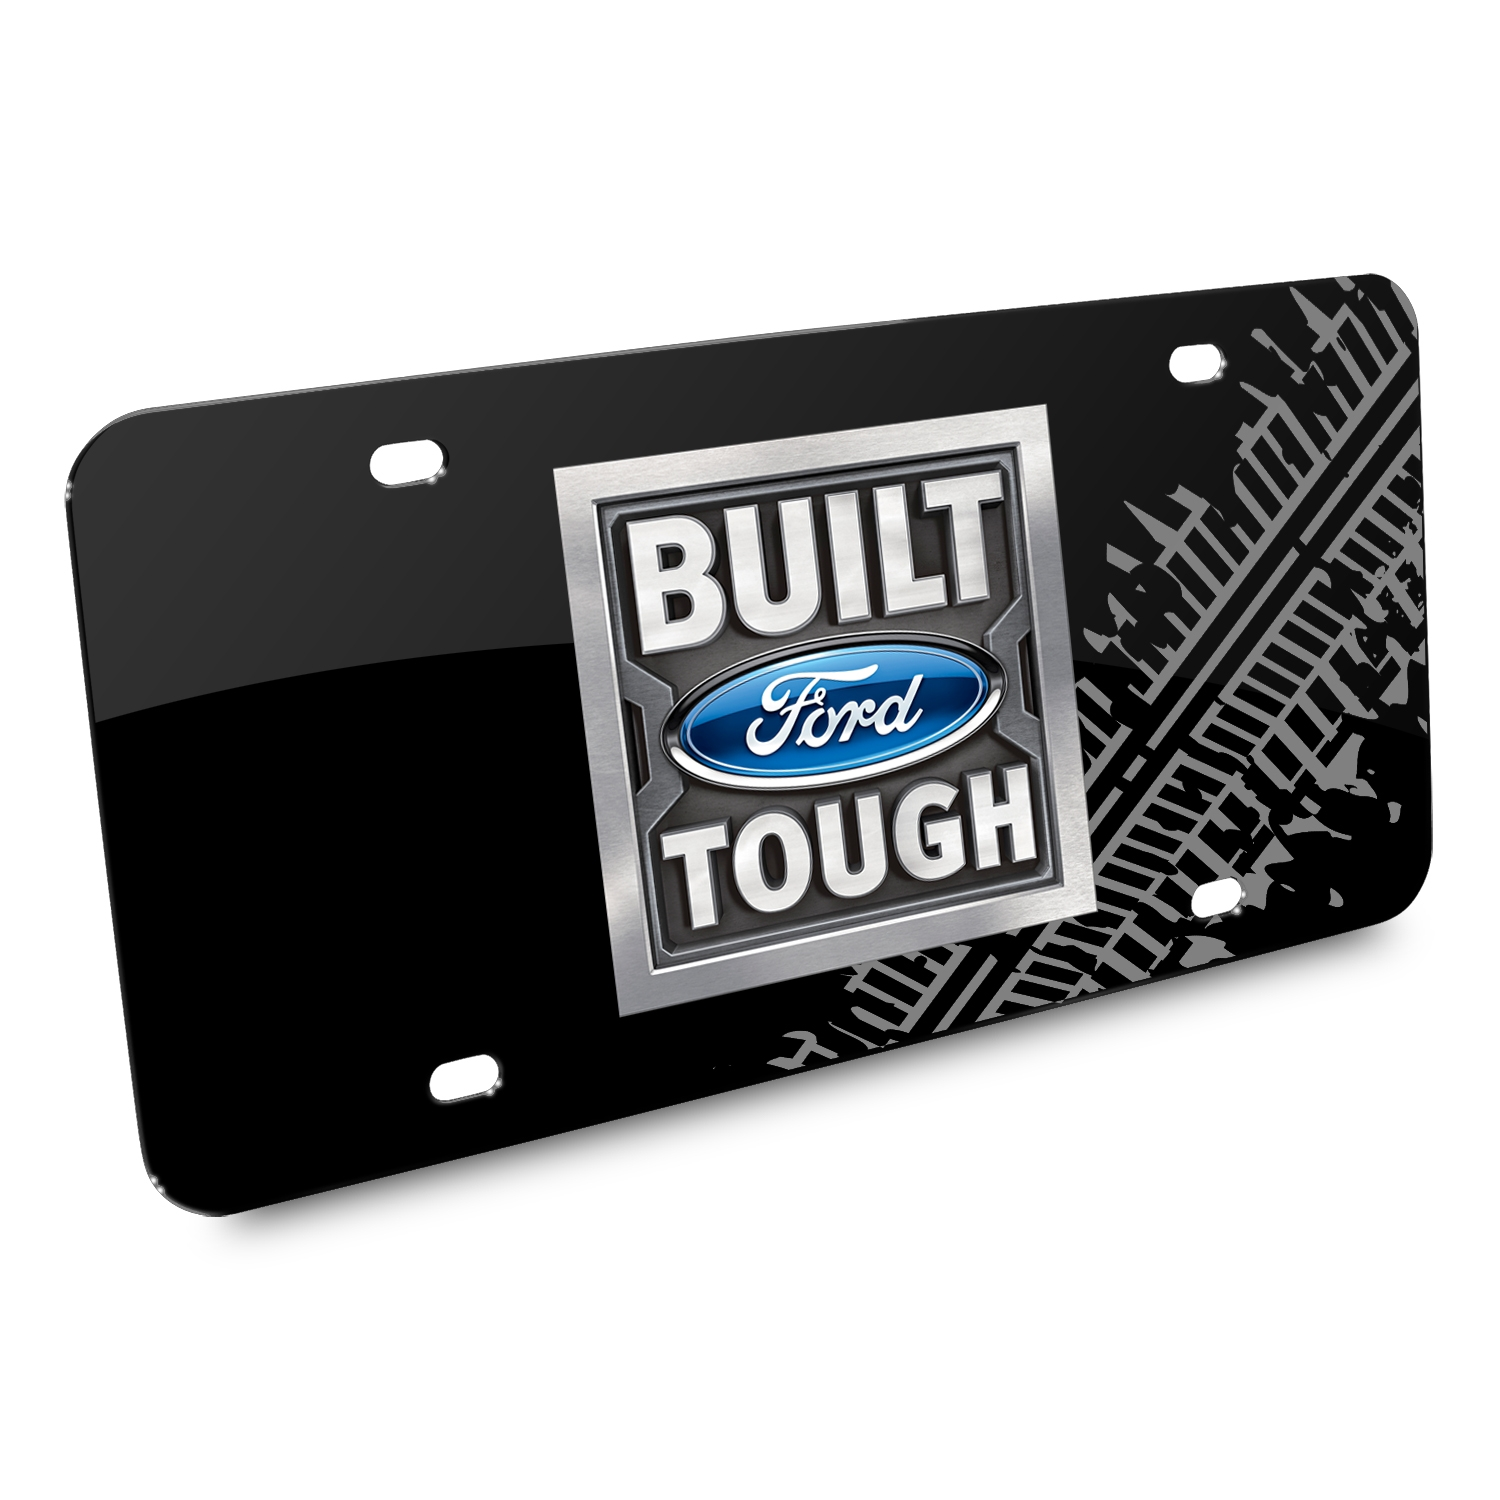 Ford Built Ford Tough Tire Mark Graphic Black Acrylic License Plate